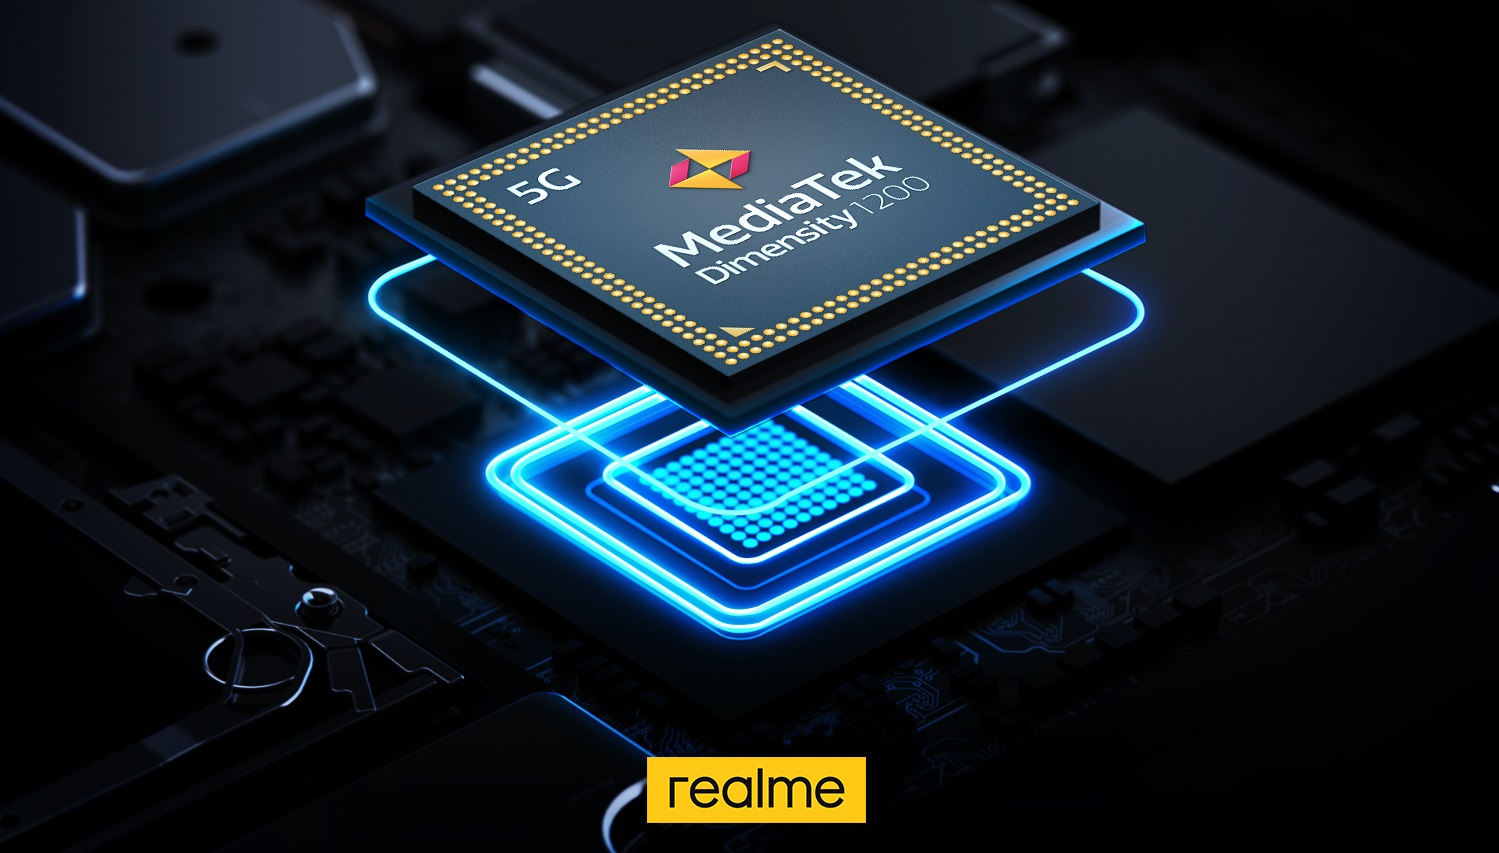 realme Will Be One of The First Smartphone Brands to Release 5G Flagship Powered by MediaTek's Dimensity 1200